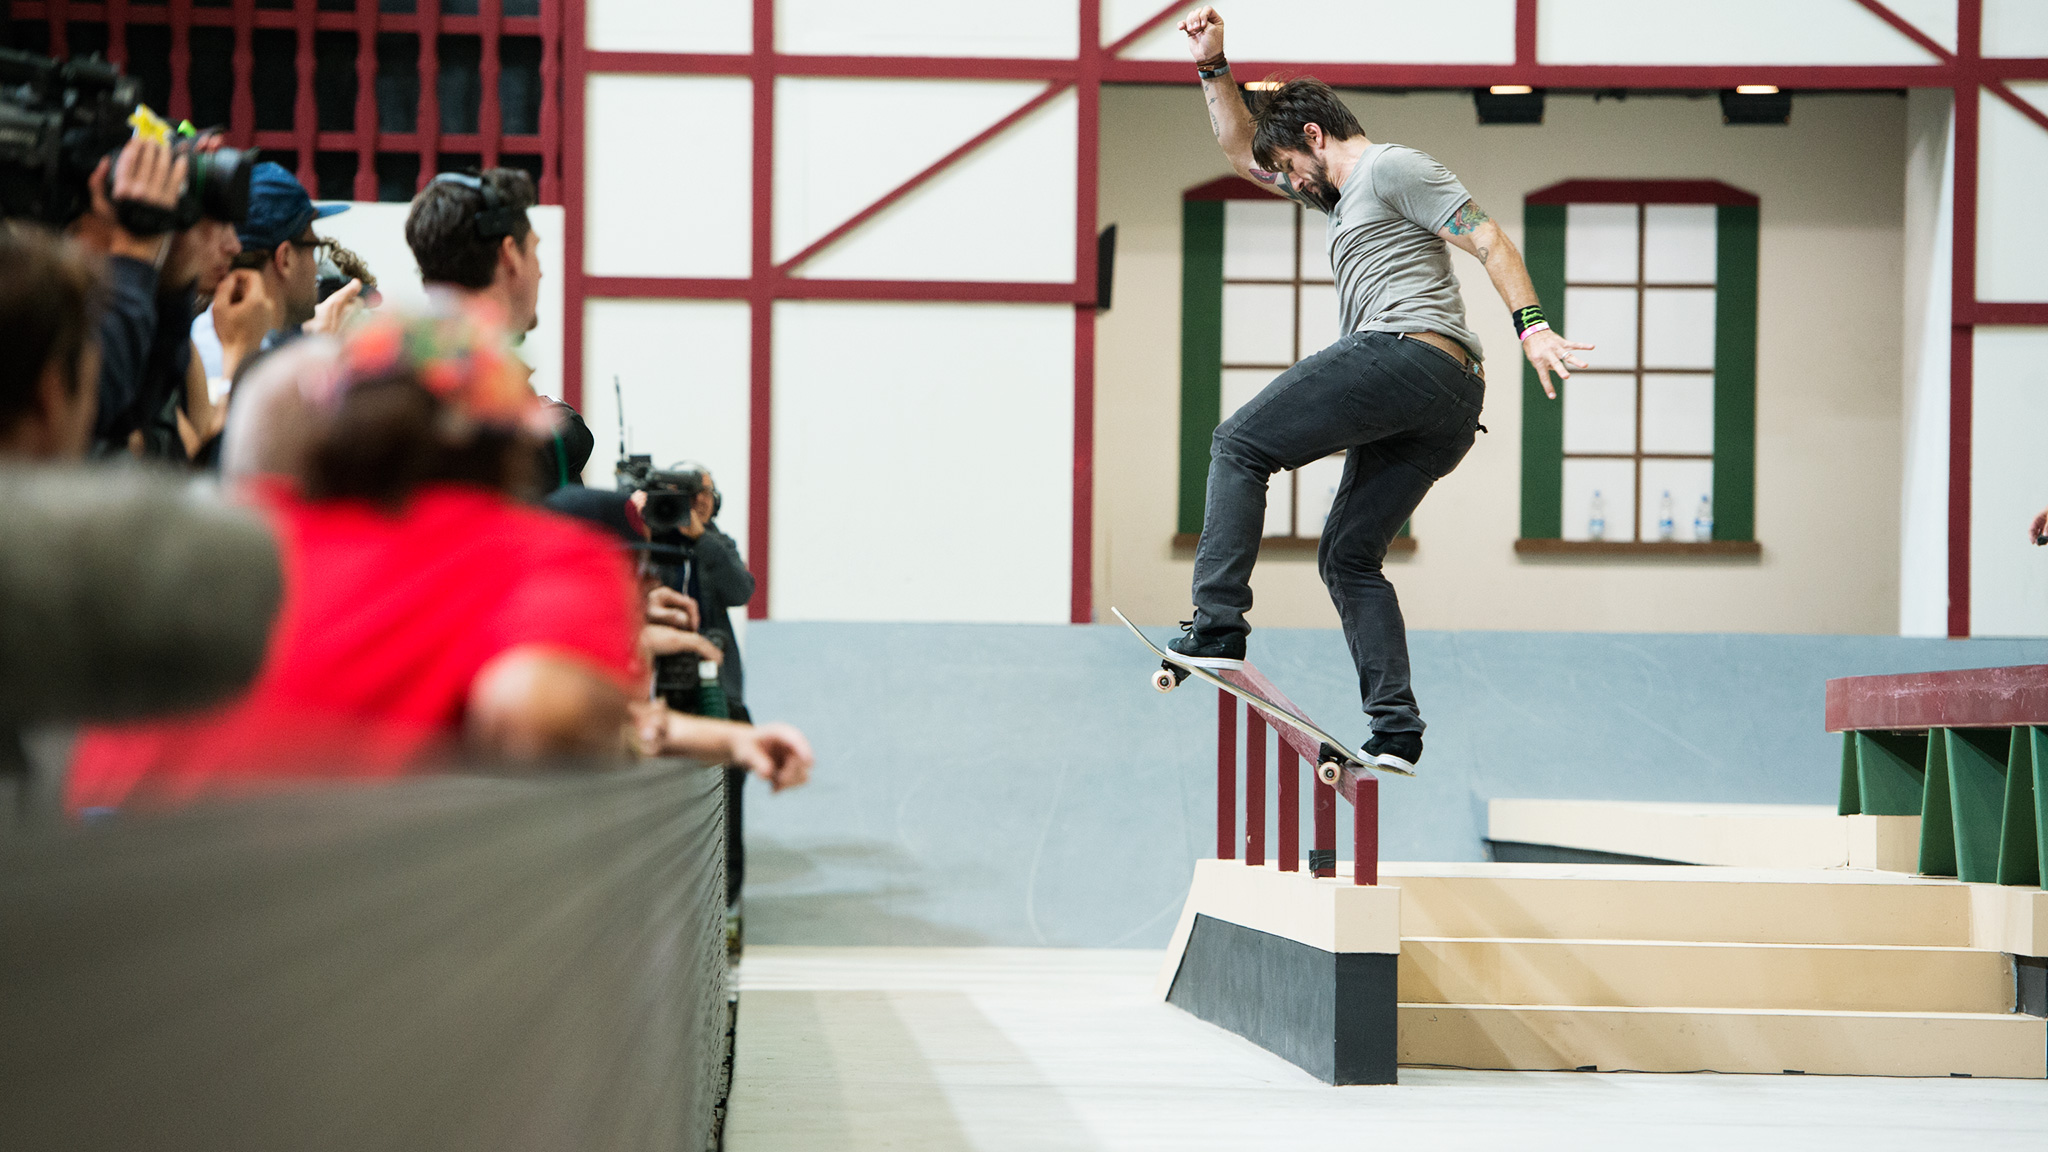 Chris Cole won his first Street League and fourth gold medal at X Games by besting Paul Rodriguez on his final run. Cole ended the competition with a picture perfect 360 flip 50-50 grind down the Hubba ledge.